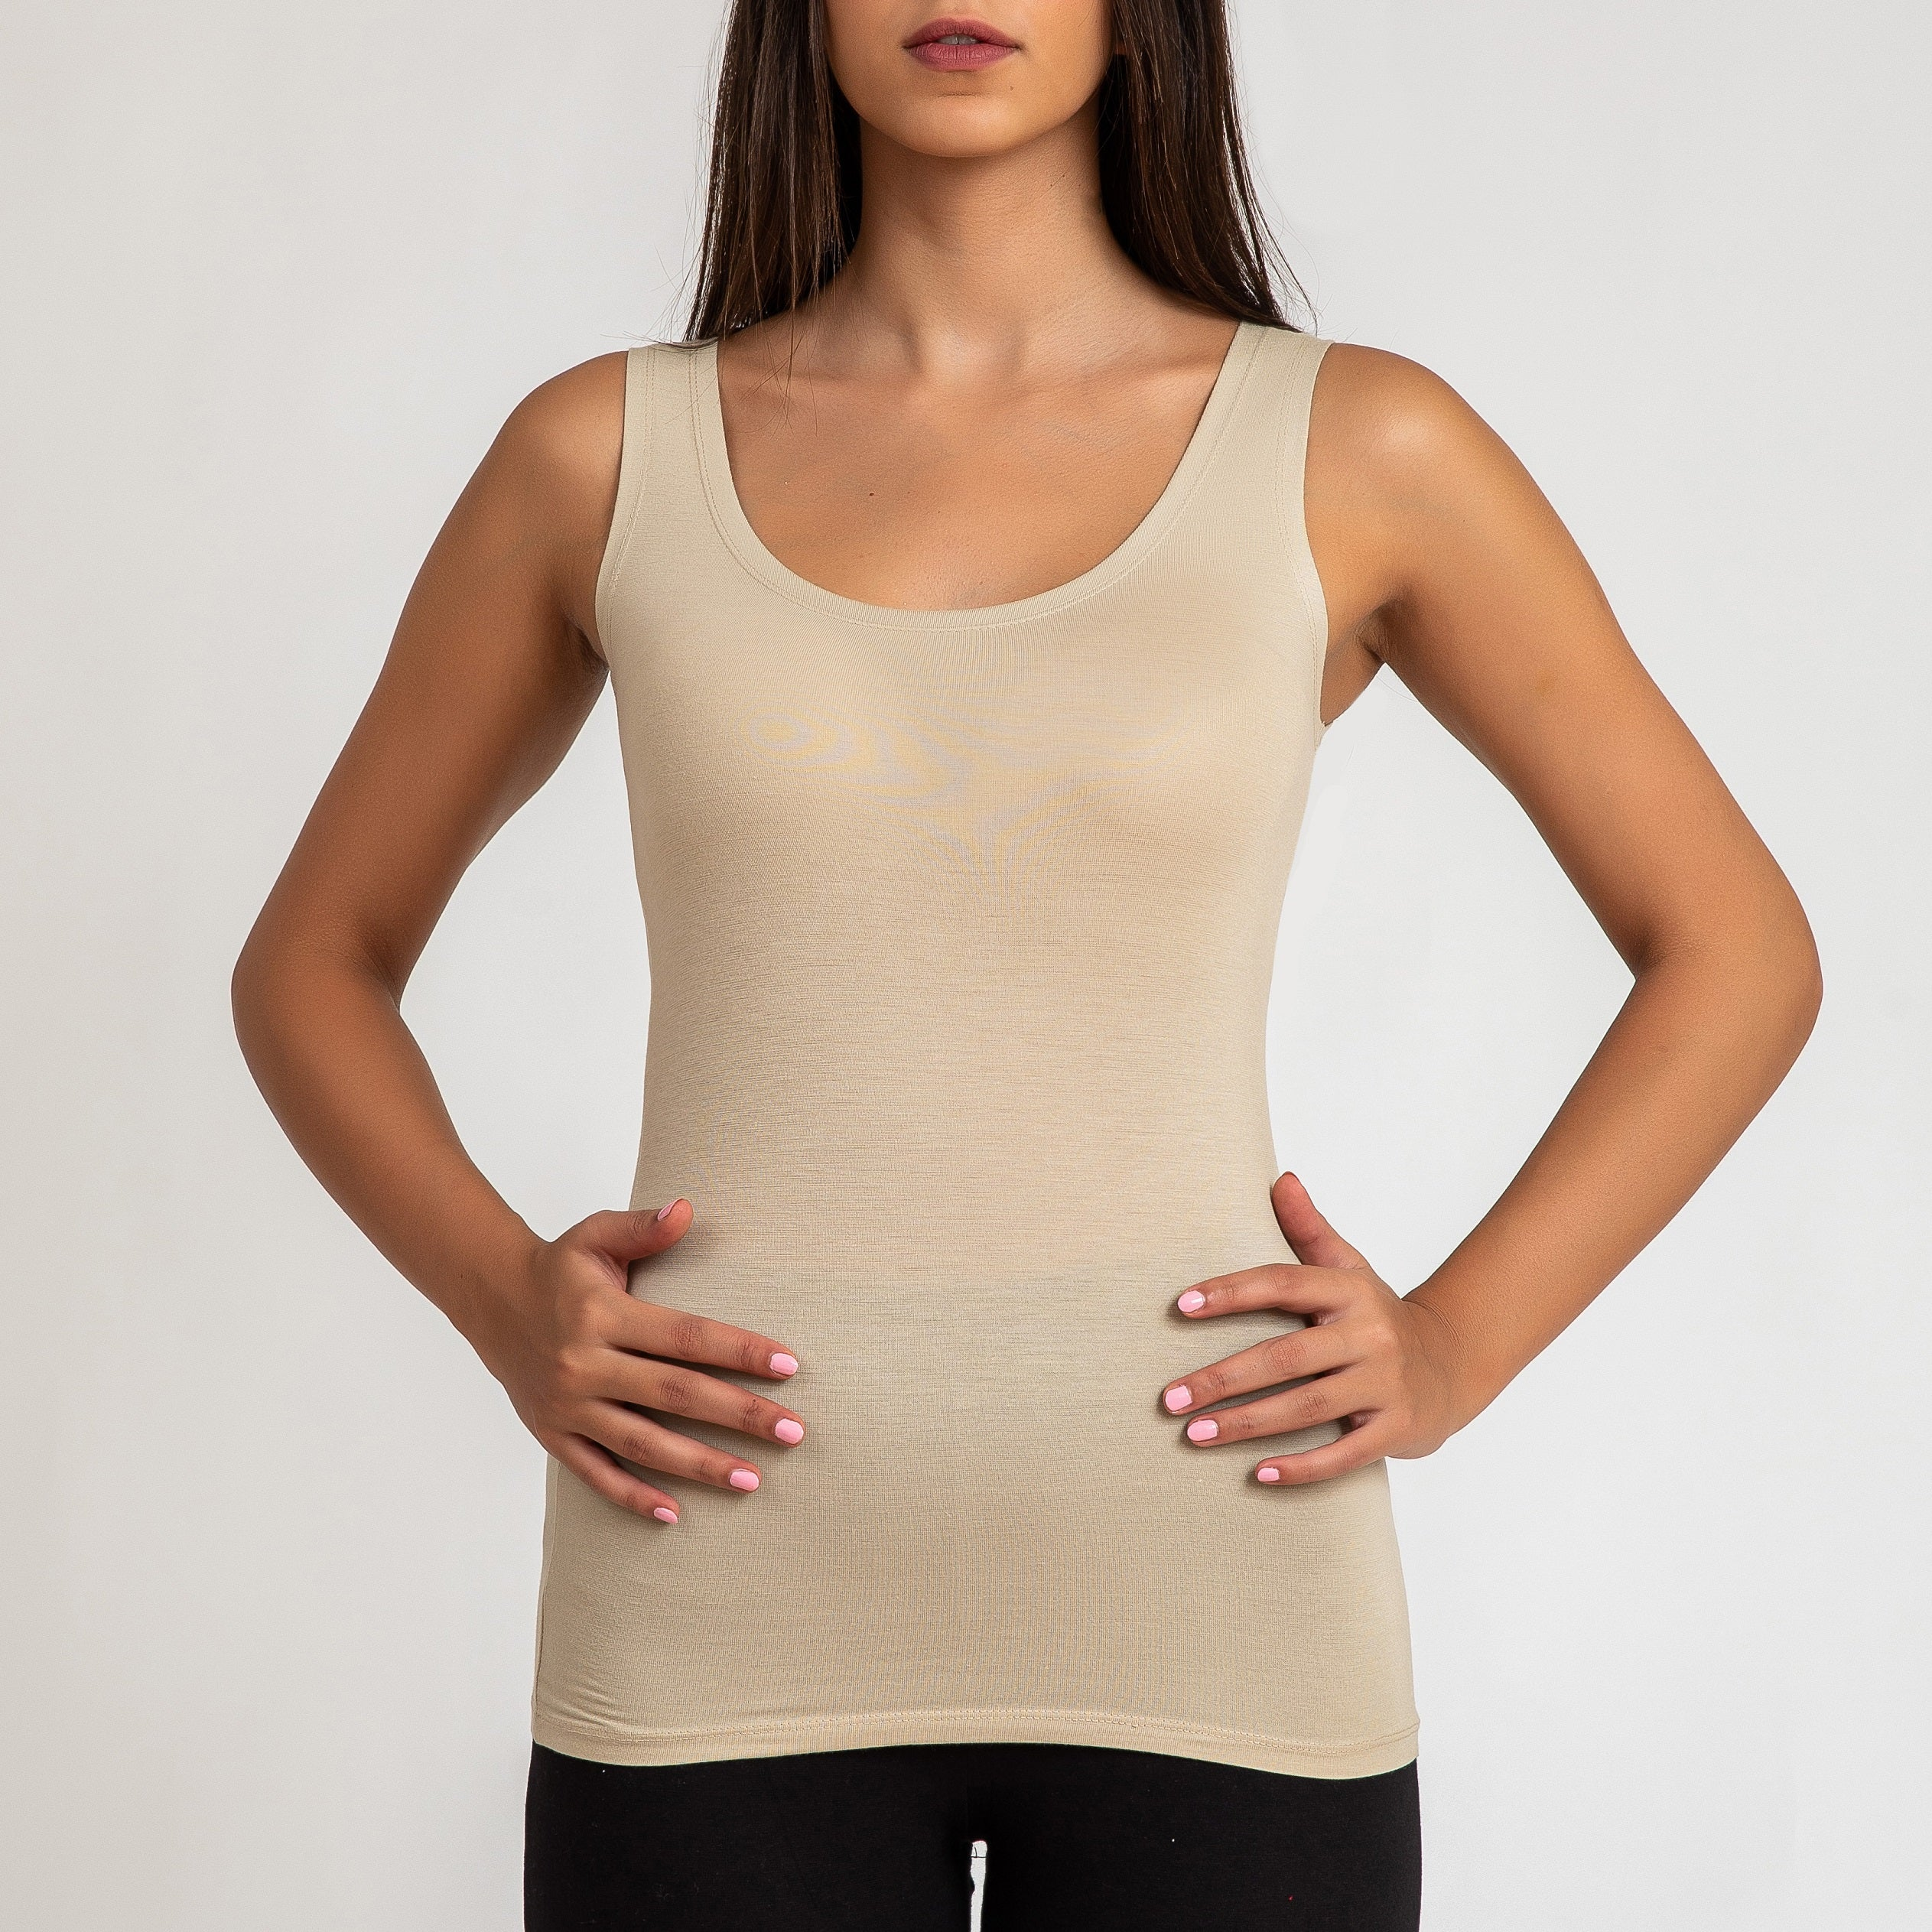 Womens' Thick Strap Viscose Vest